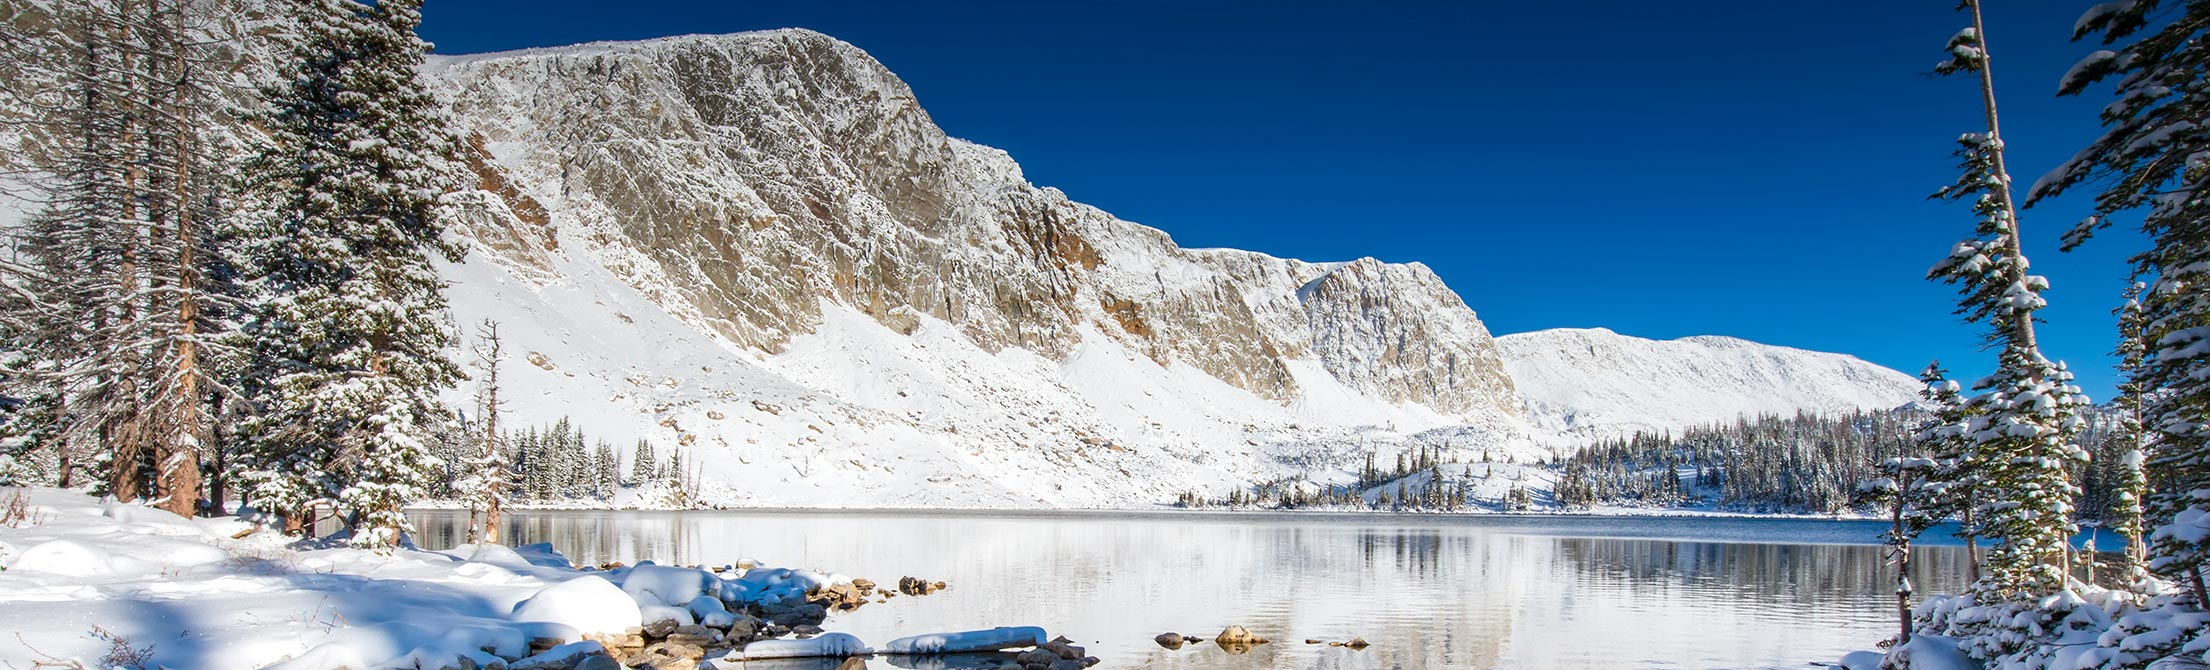 Photograph of Medicine Bow Peak in winter with lake at base of mountain